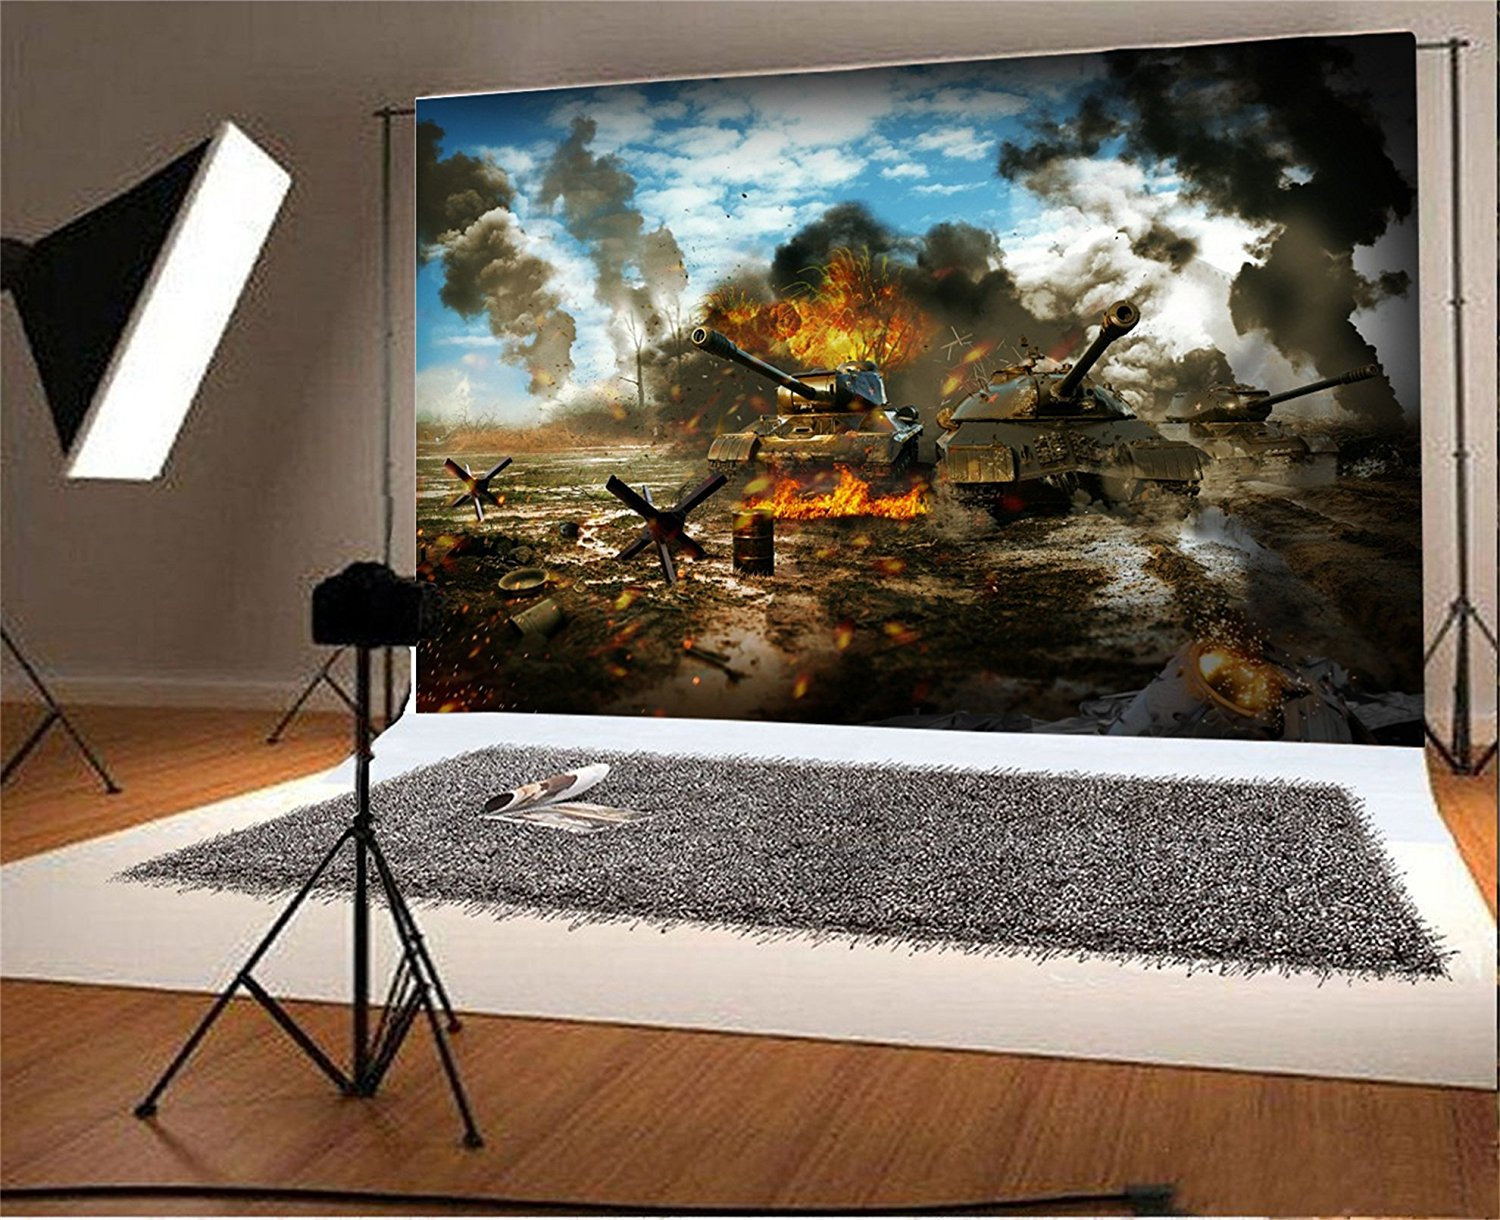 blue sky white clouds battle Tank war zone Fire Background Vinyl cloth High quality Computer print wall photo backdrop